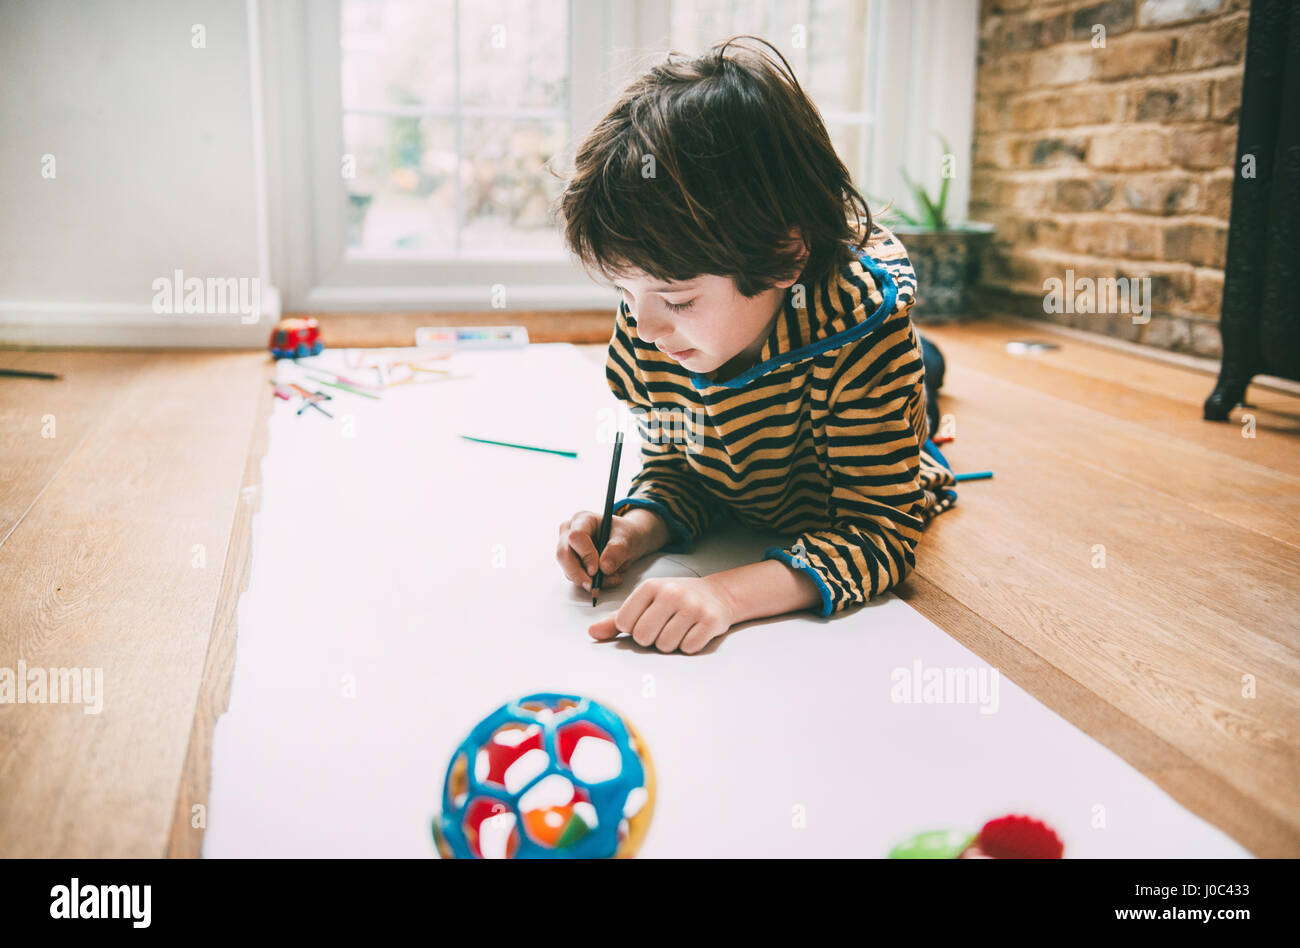 Boy lying on floor dimensions sur du papier long Photo Stock